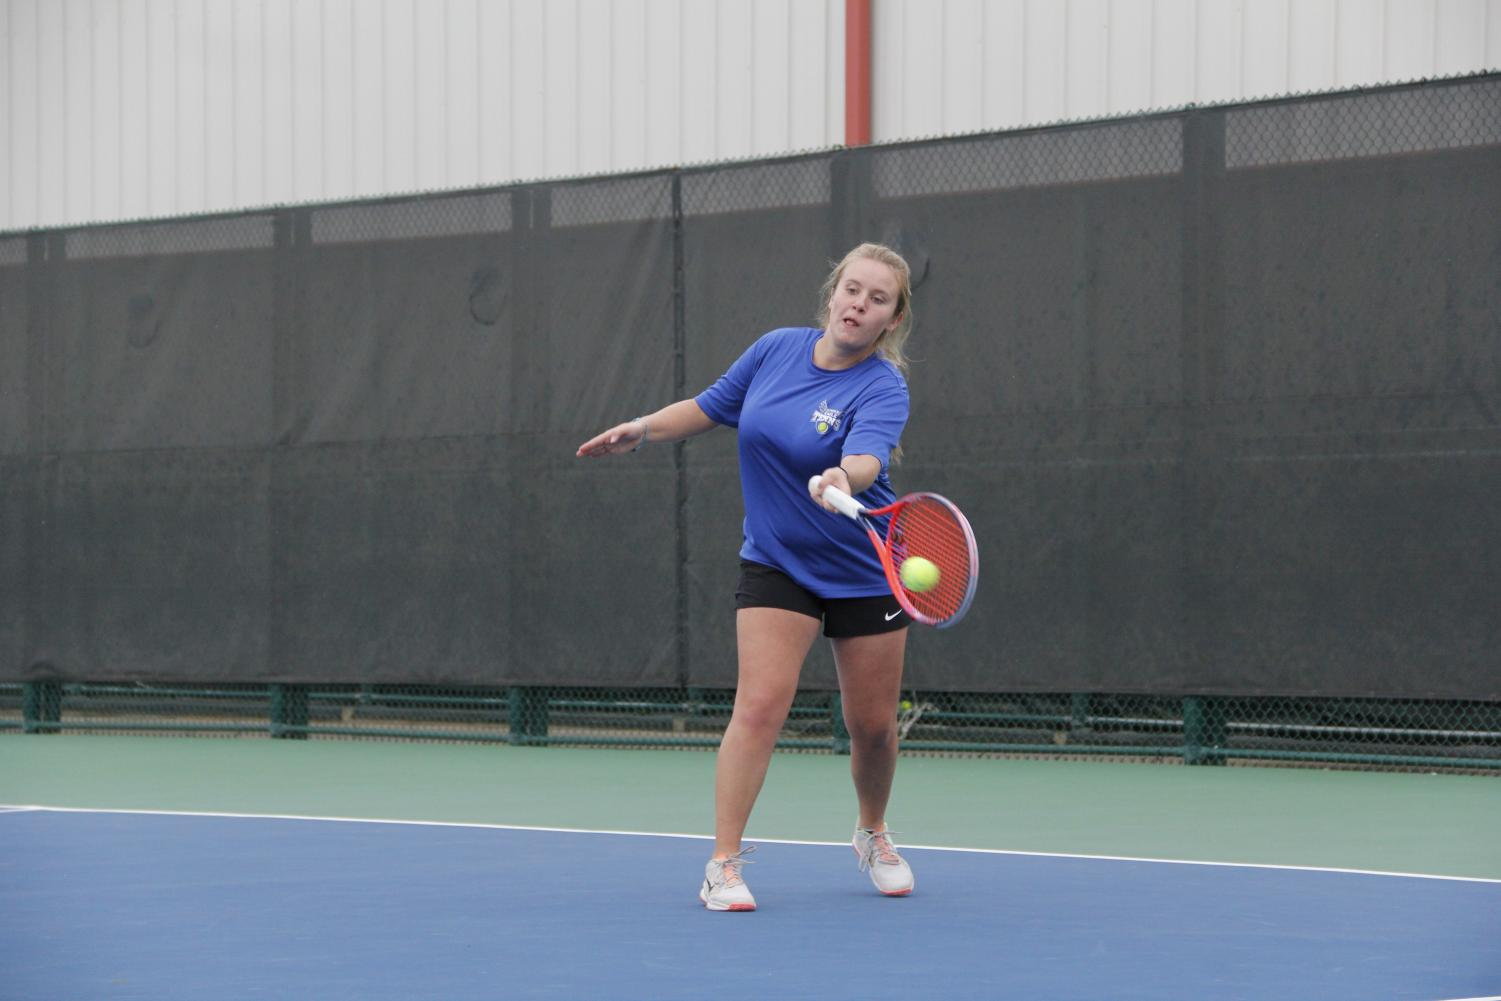 Senior Caroline Colliver volleys the ball at the bi-district game against Jacksonville. The varsity tennis team will play either Whitehouse or Kaufman at the regional tournament Monday.